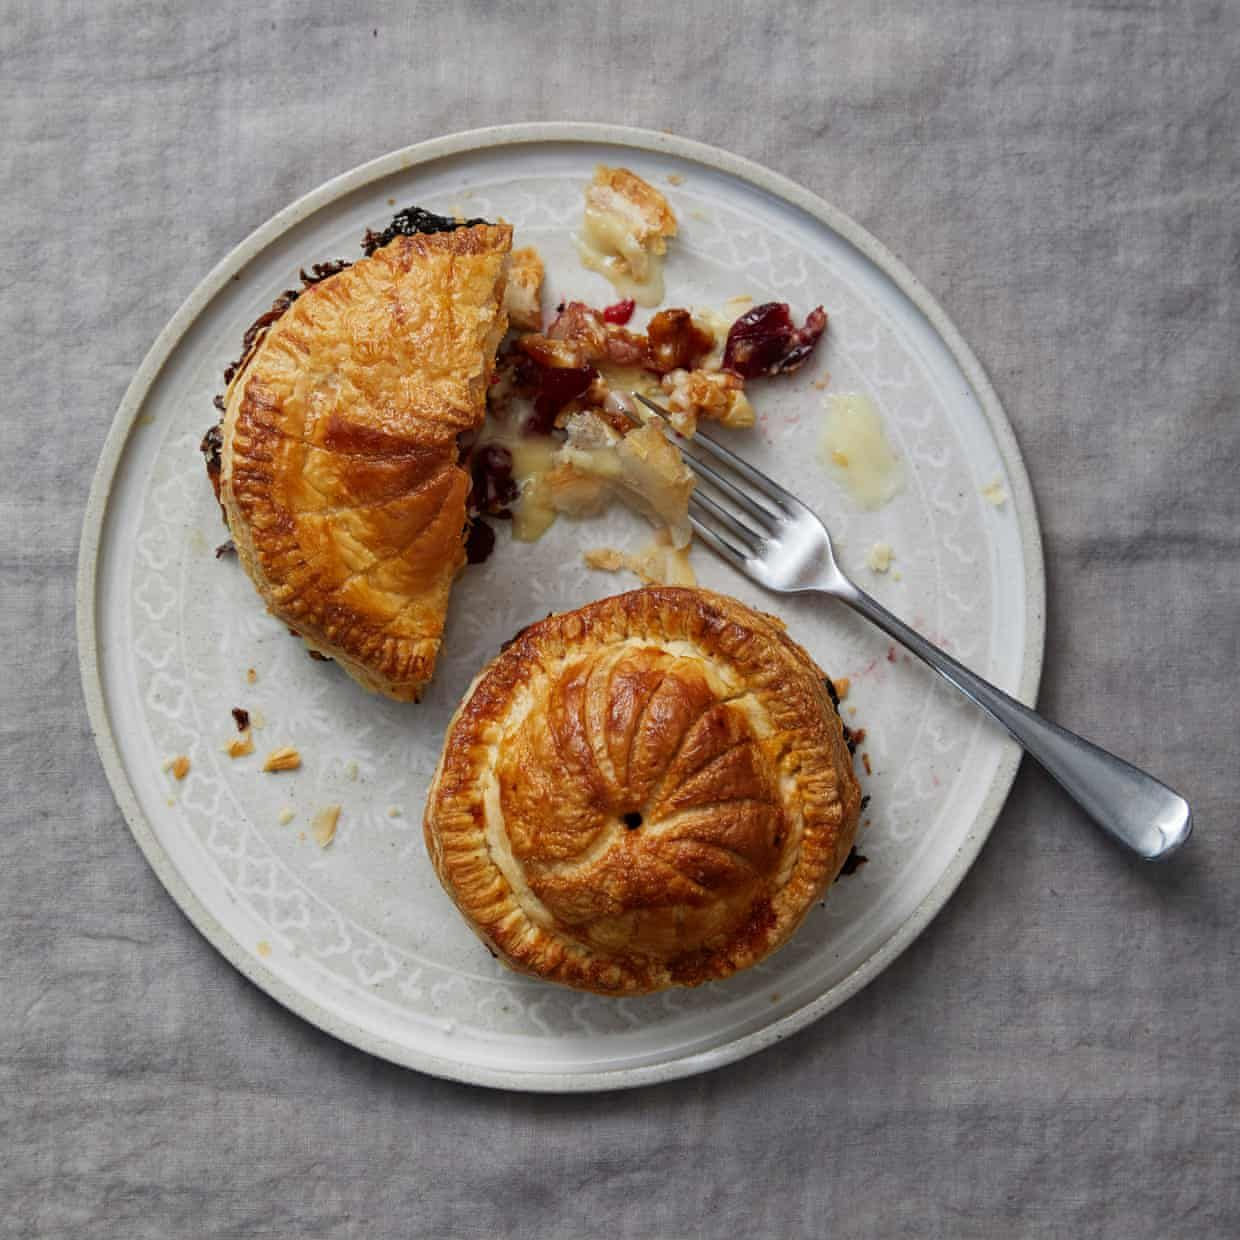 A New Year's Eve dinner menu by Great British Bake Off